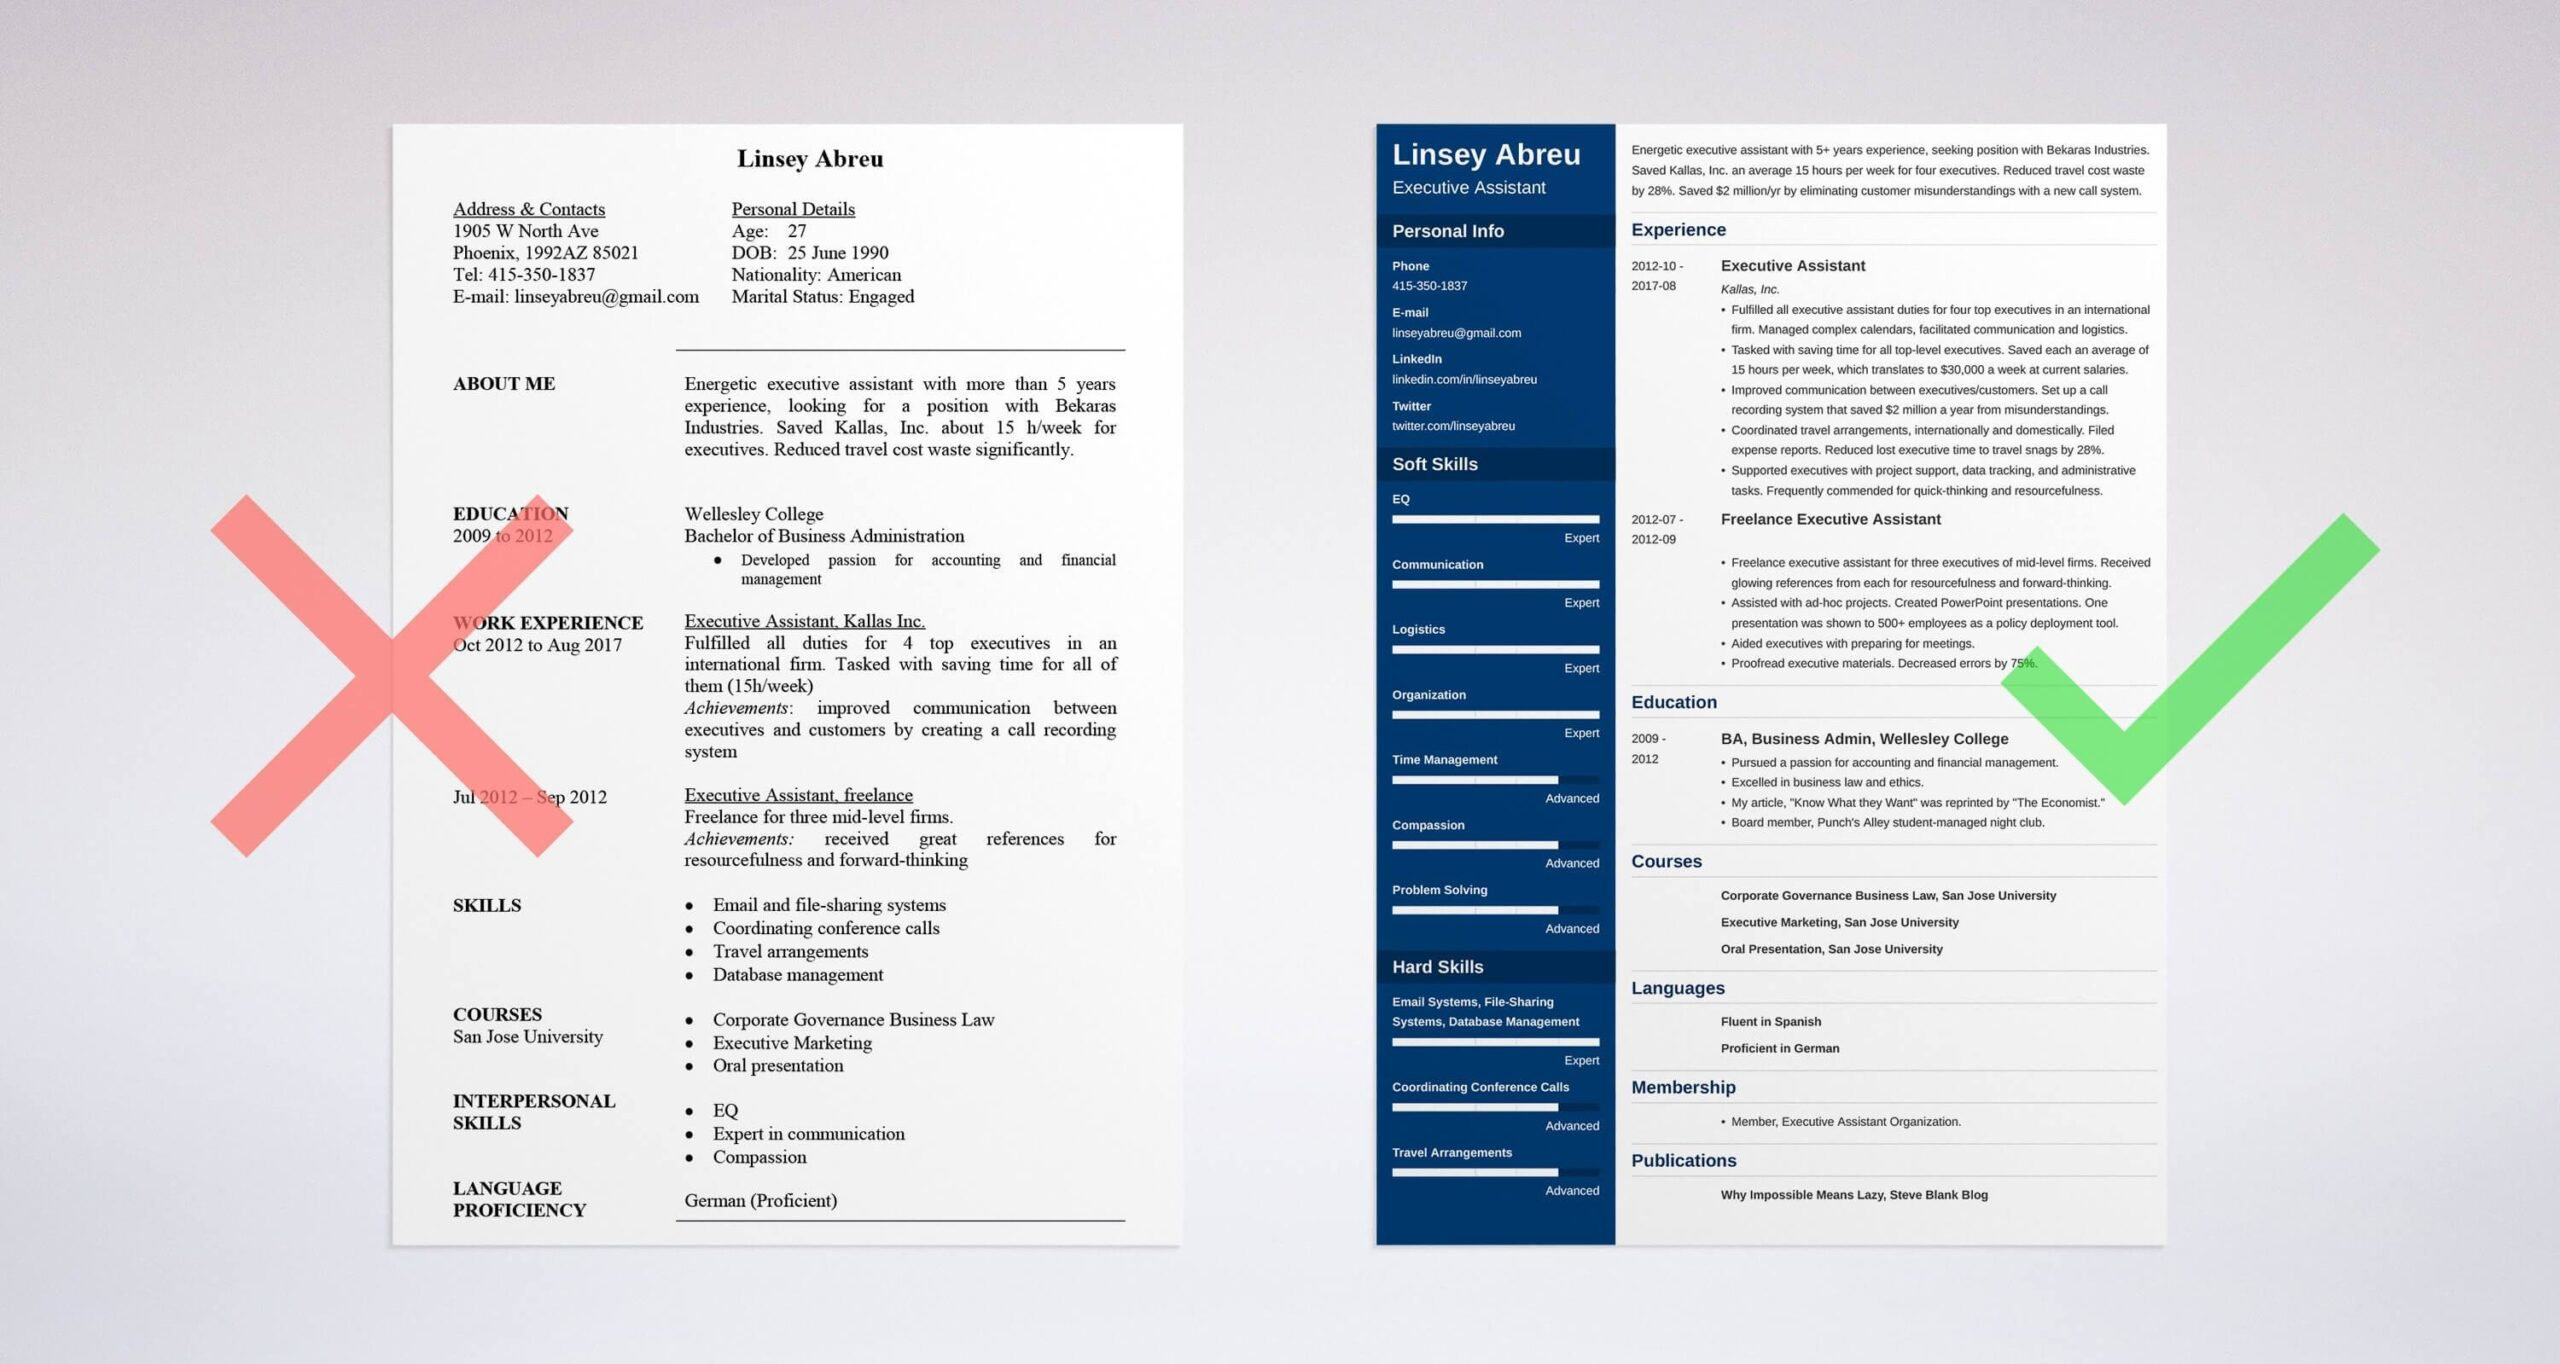 executive assistant resume sample skills objective chief of staff job entry level Resume Chief Of Staff Job Resume